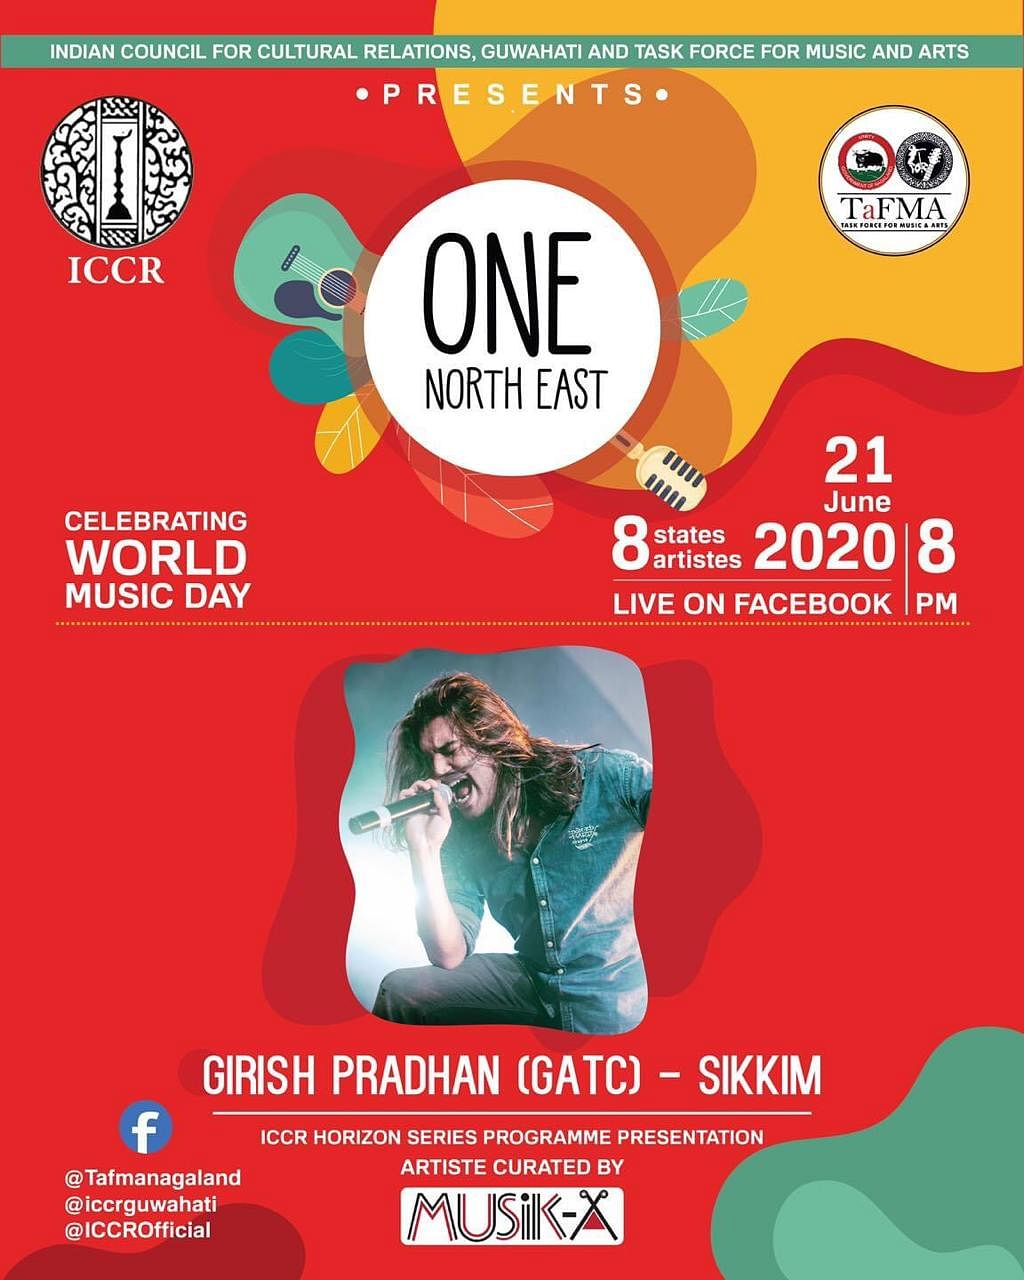 8 NE artistes to come together to mark World Music Day tomorrow